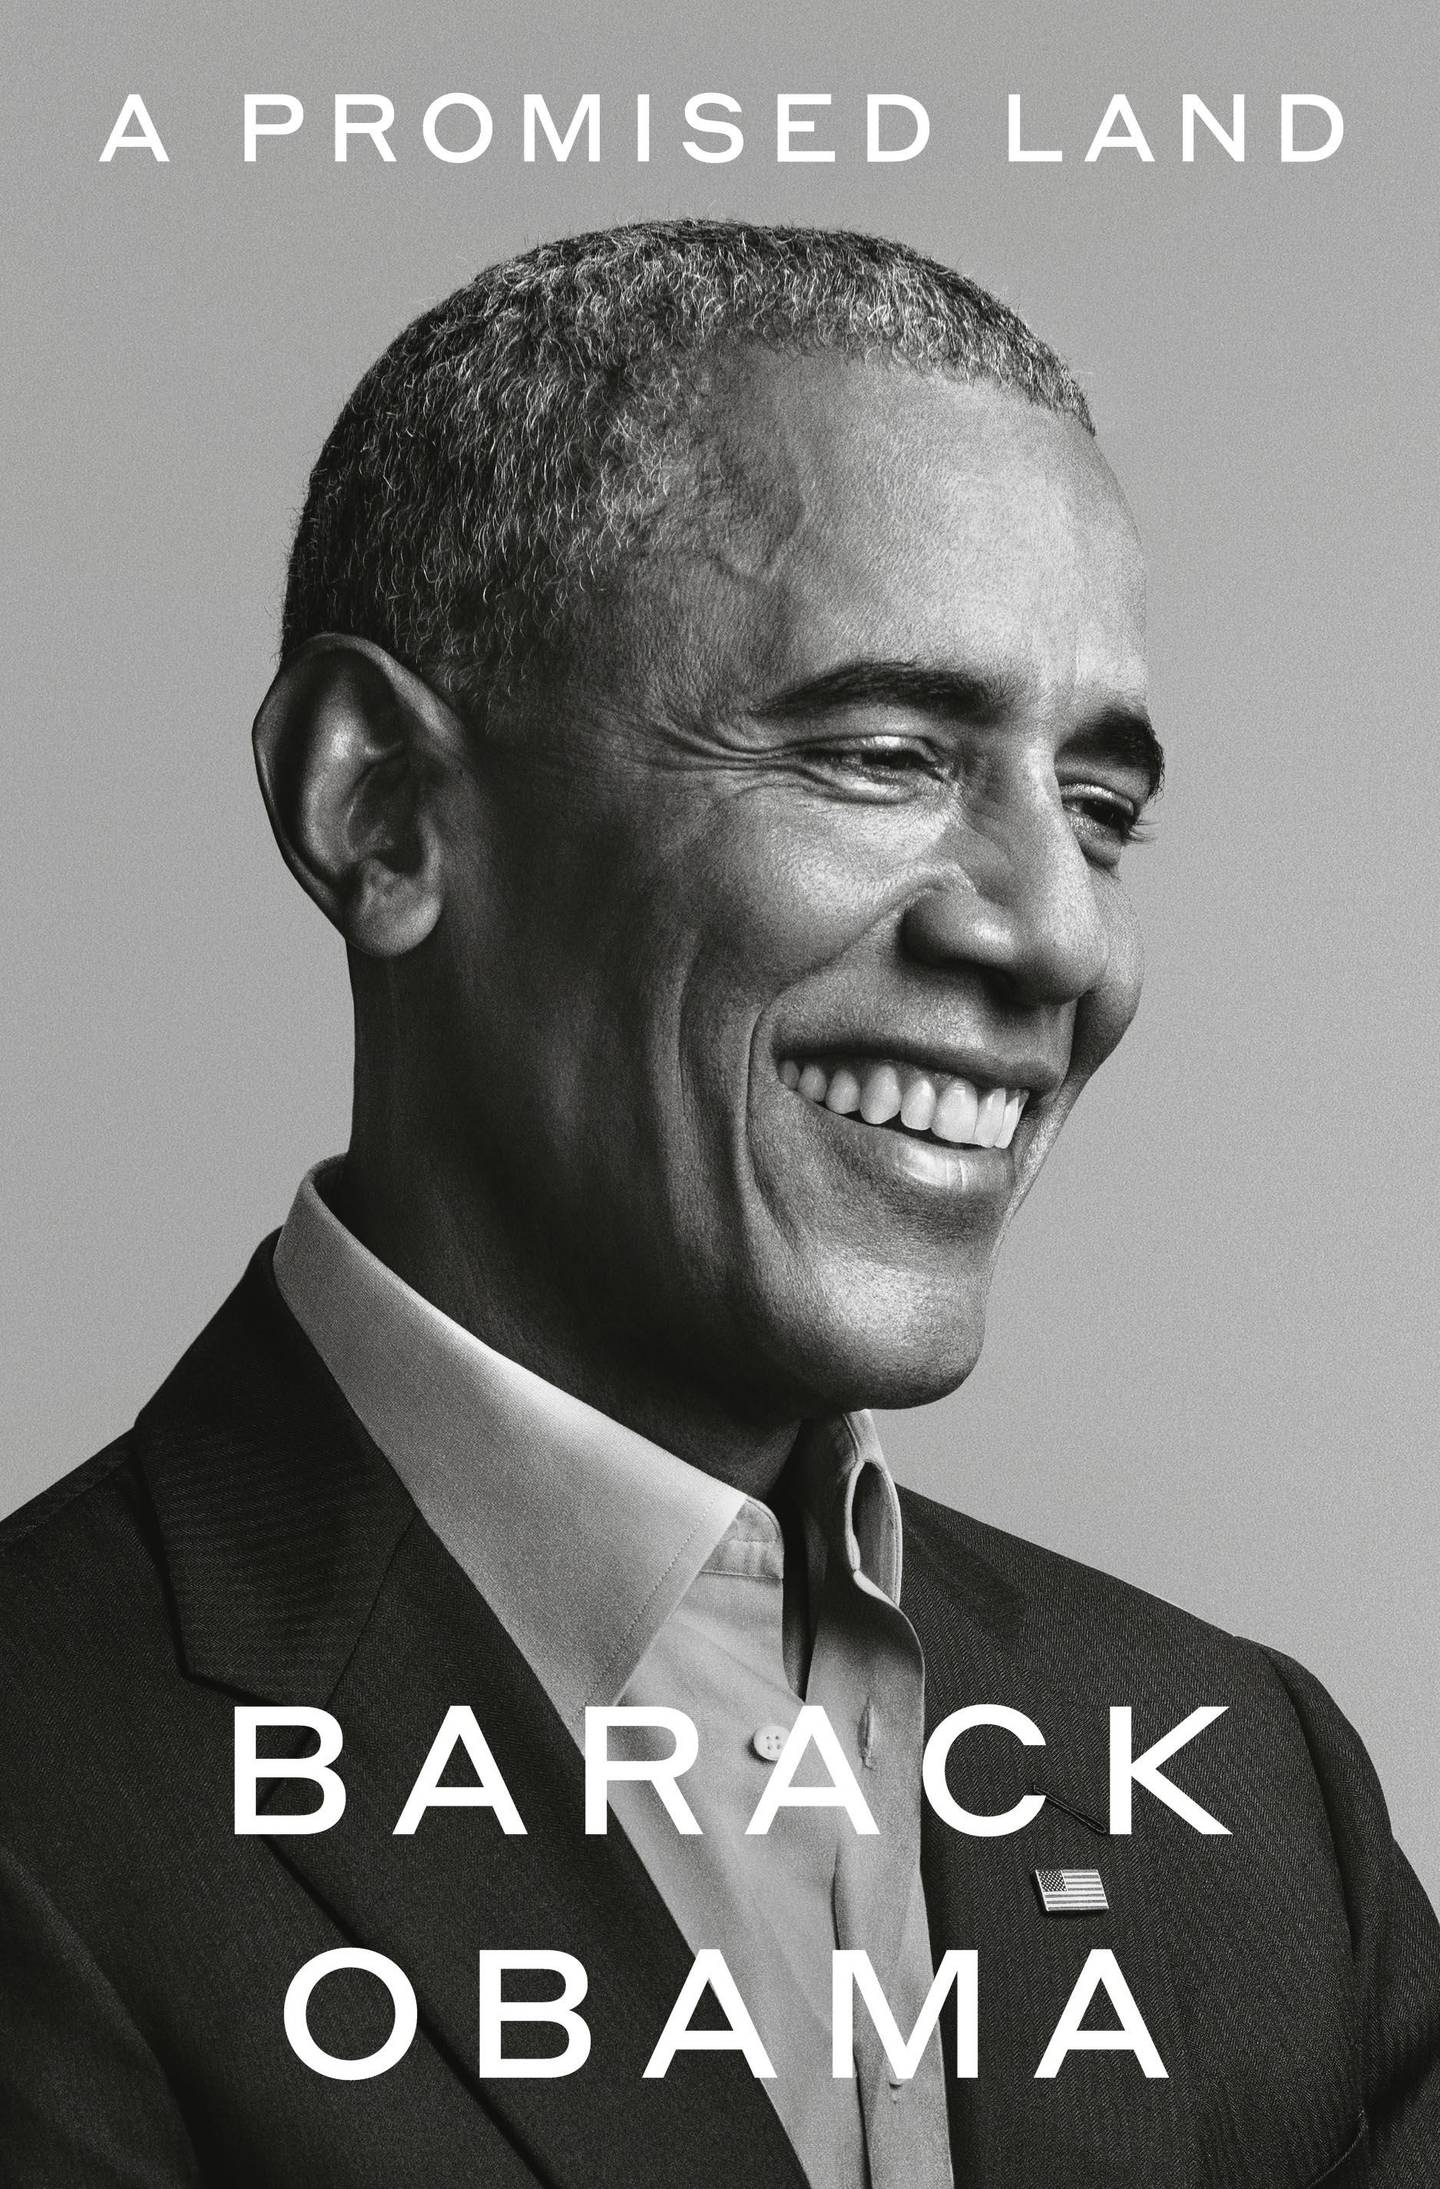 A Promised Land by Barack Obama published by Crown. Courtesy Penguin Random House